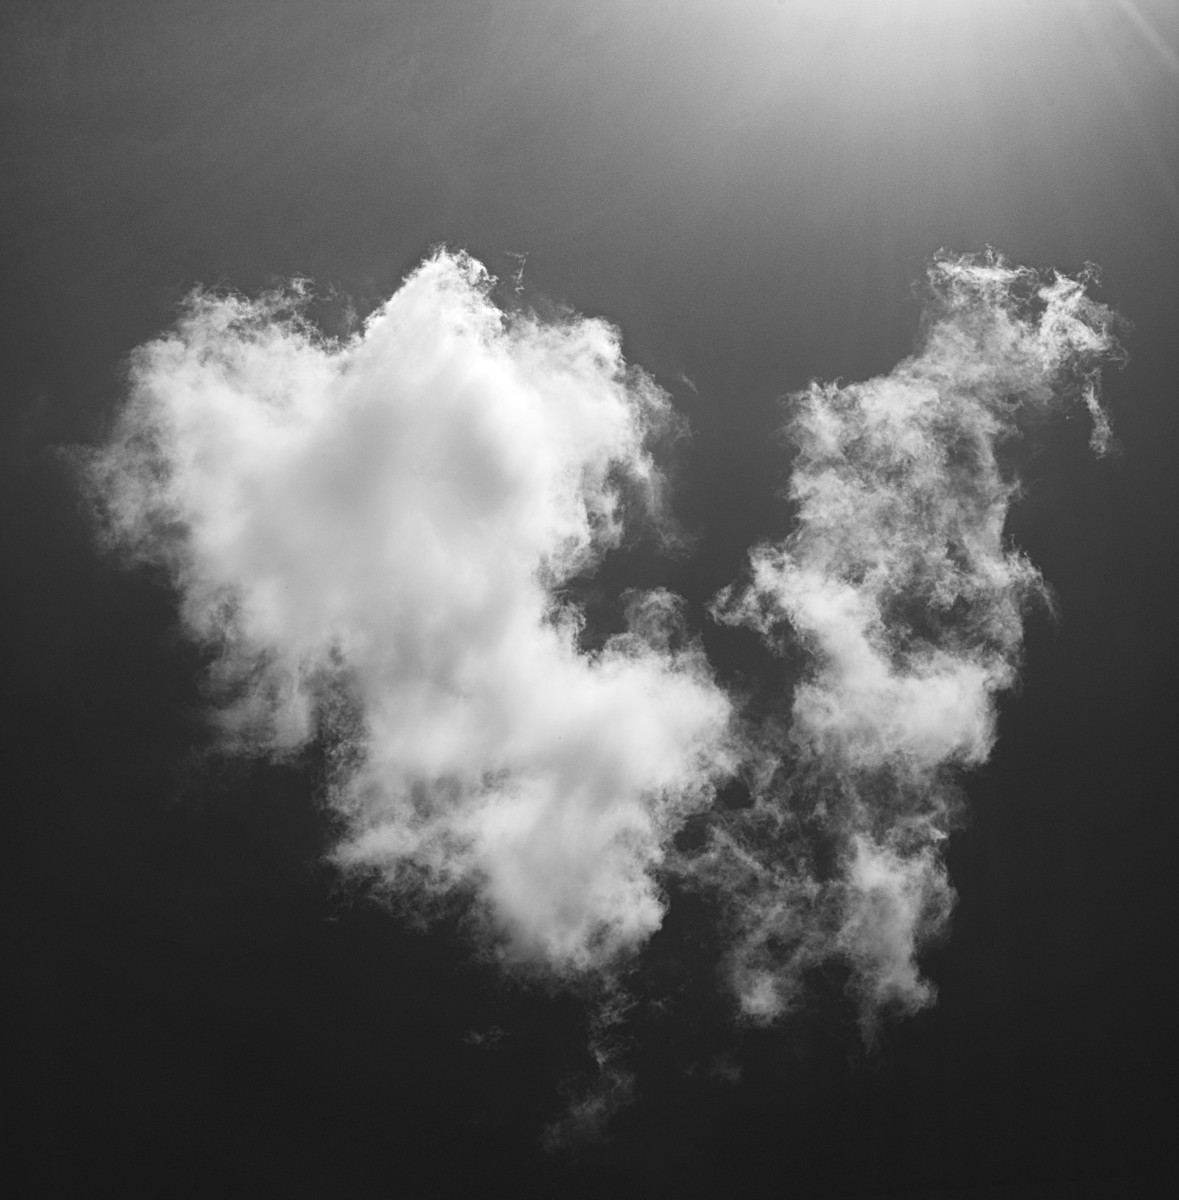 Cloud in Black and White